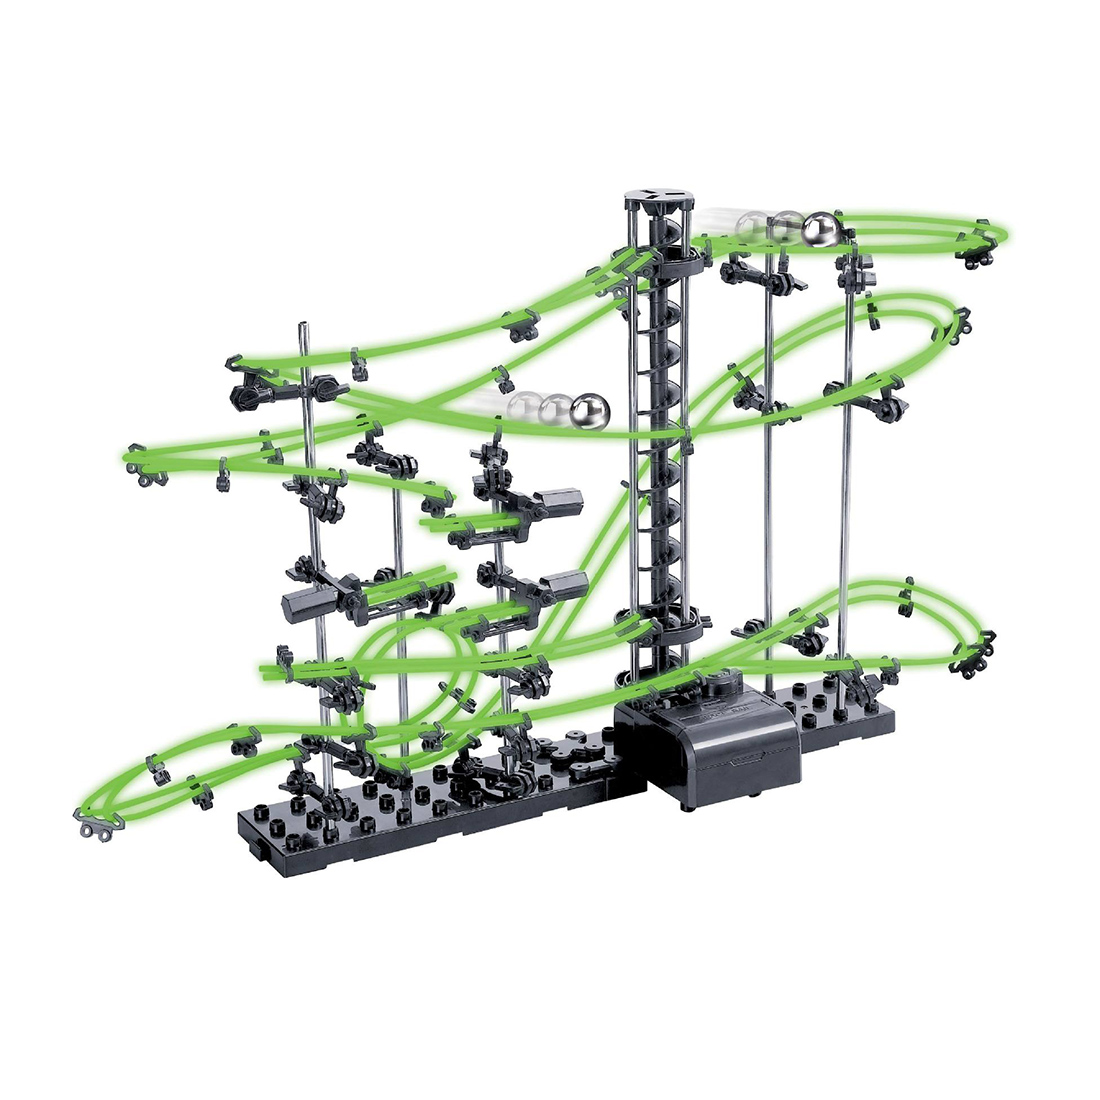 ФОТО DIY Educational Toys Spacerail Level 2 Glow In The Dark Marble Roller Coaster Space Rail Steel Balls 10000mm Building Kit Gift